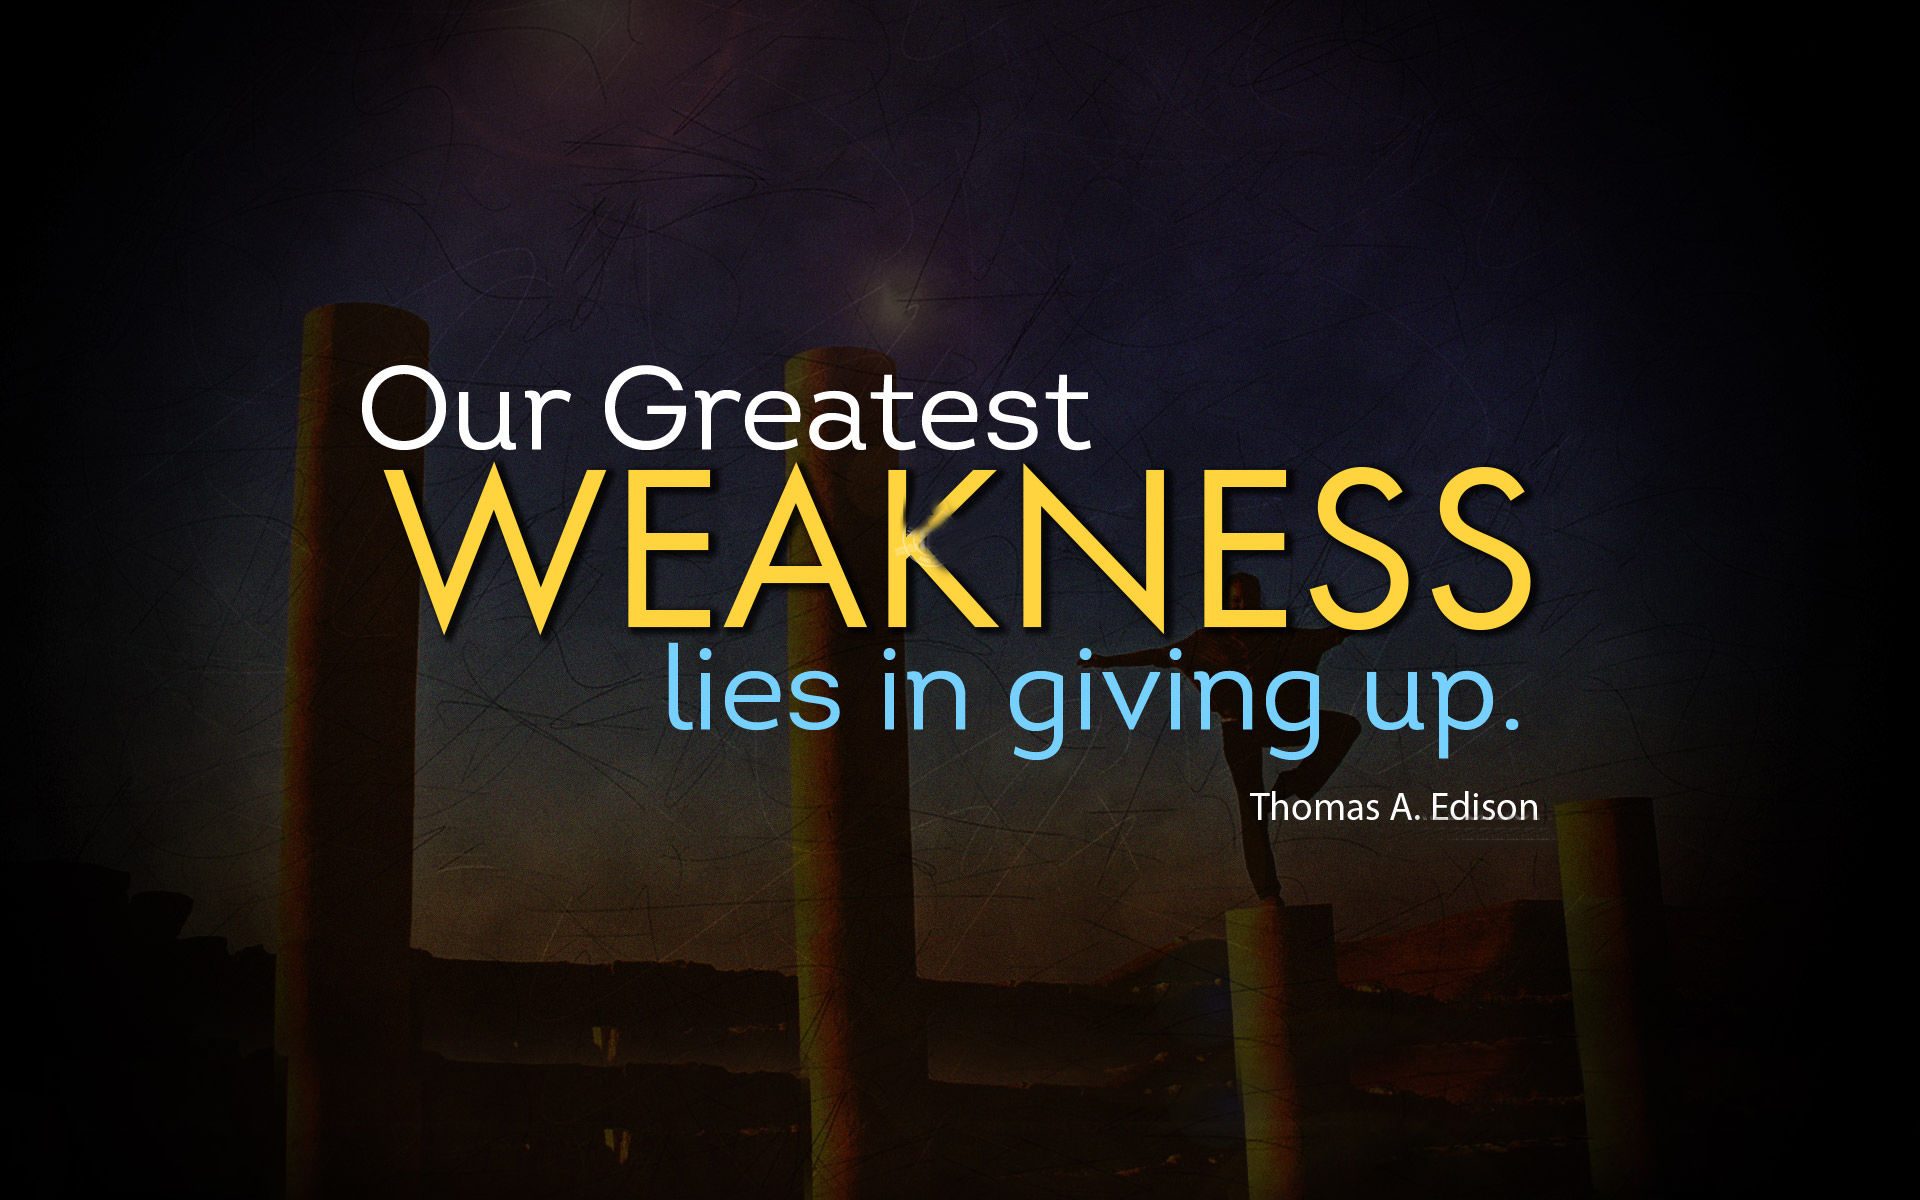 276110-our-greatest-weakness-lies-in-giving-up